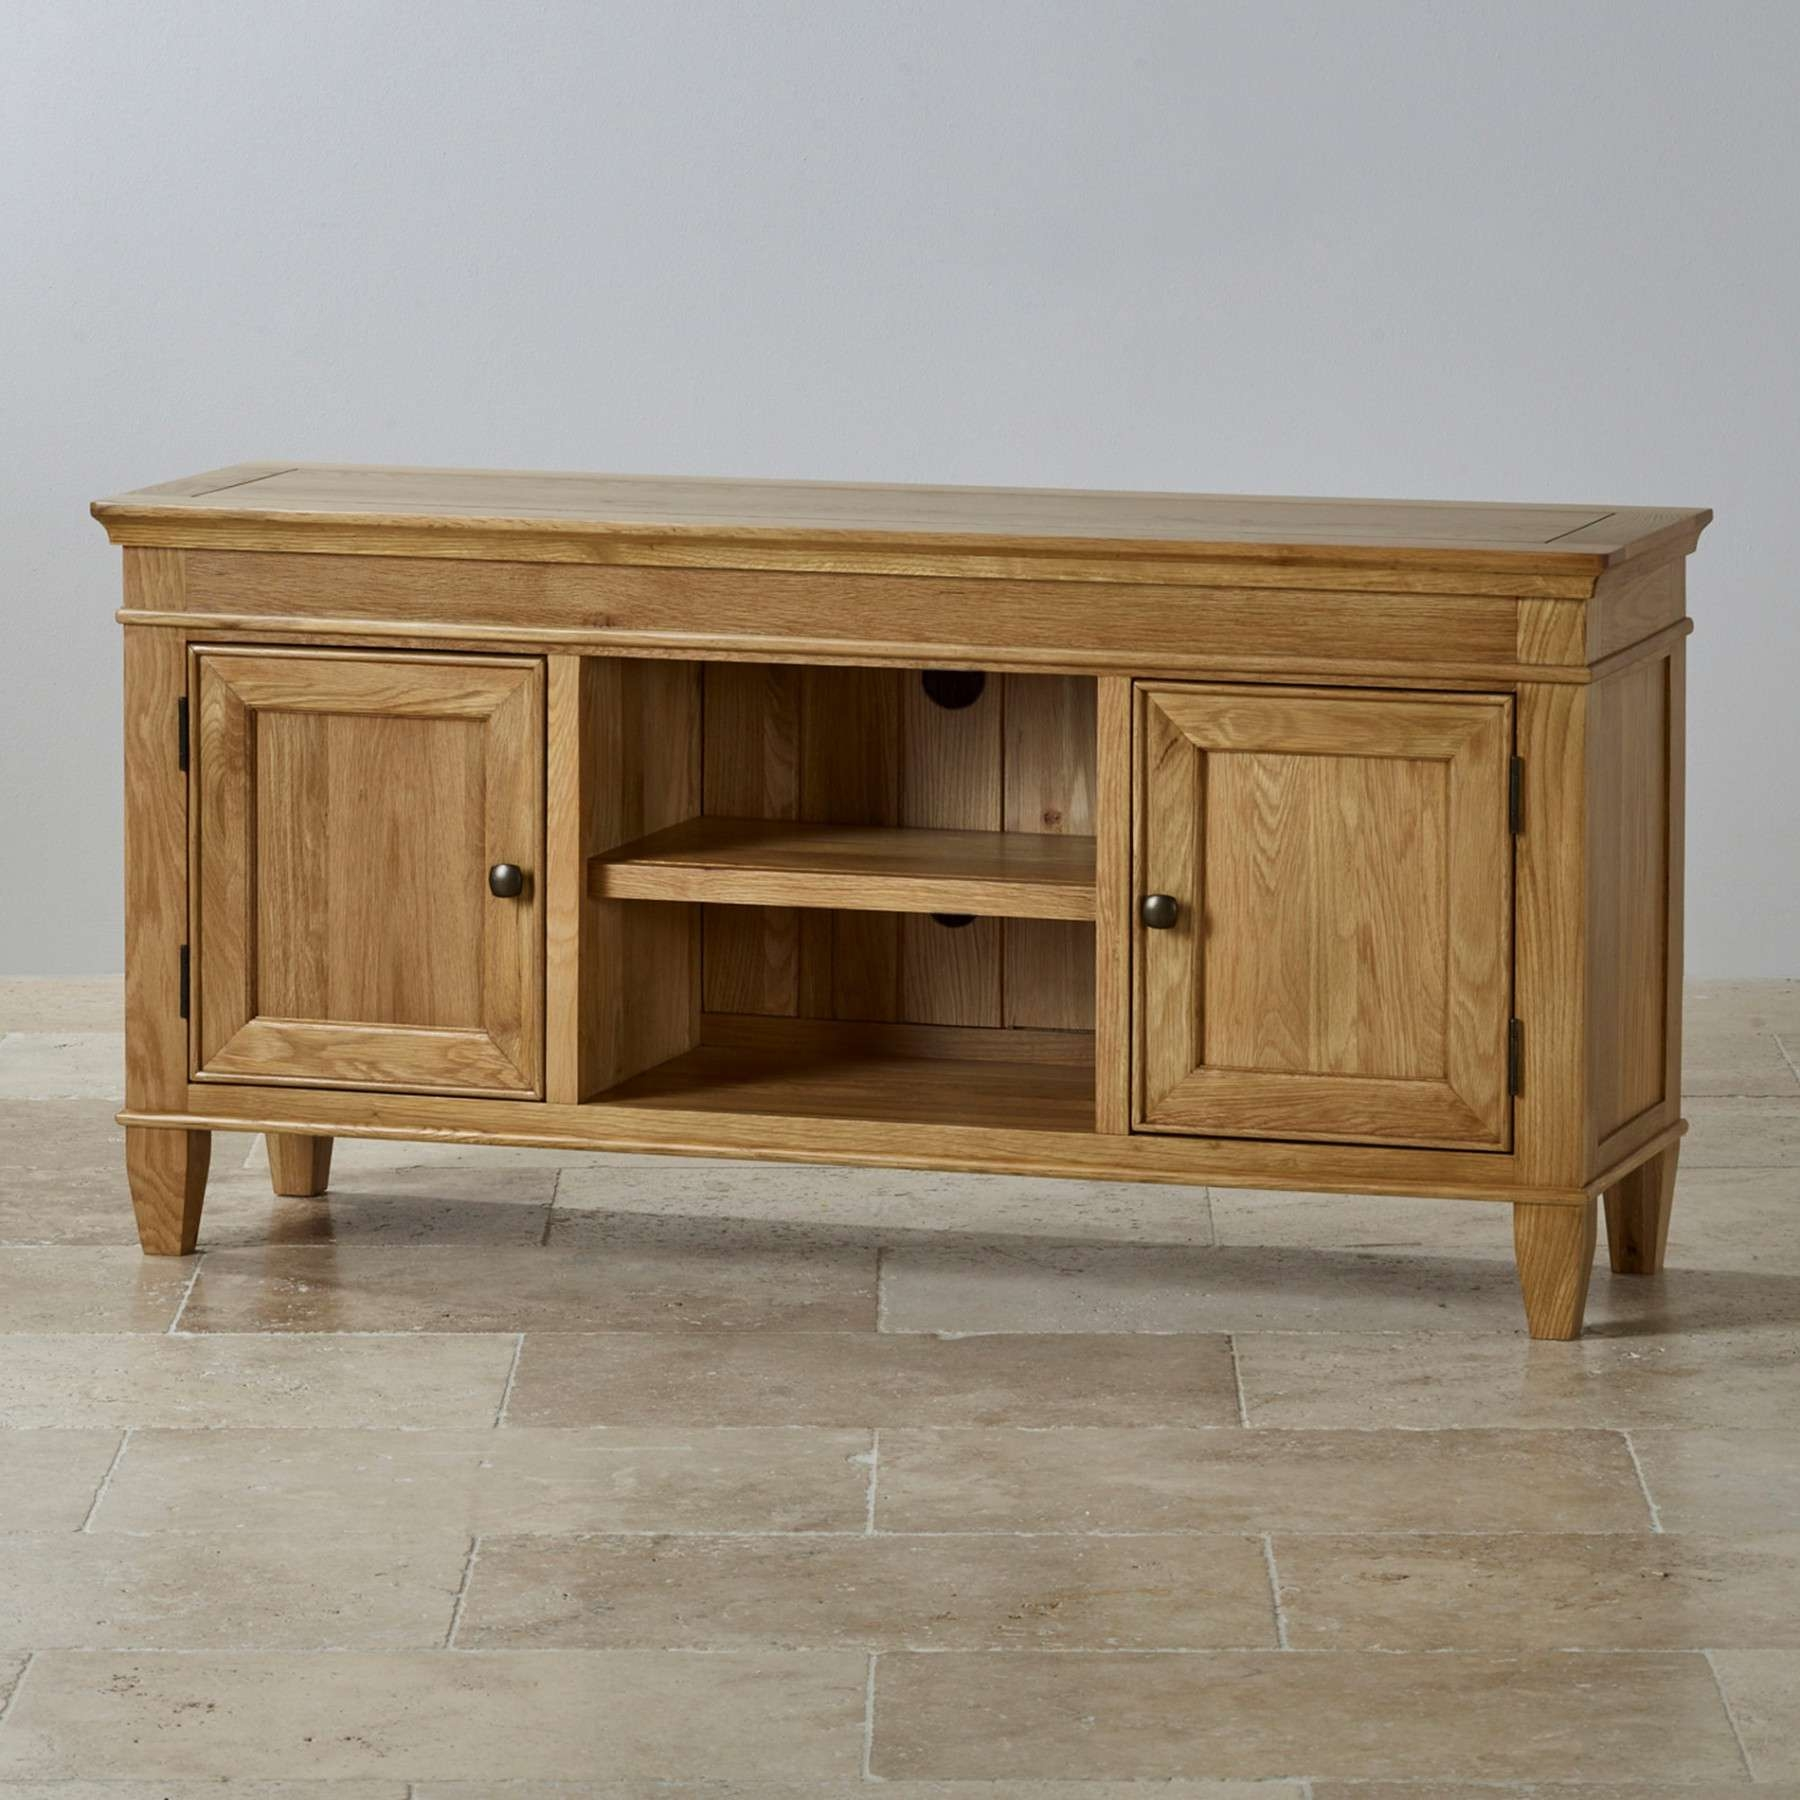 Classic Natural Solid Oak Widescreen Tv Stand Oak Furniture Land Intended For Widescreen Tv Cabinets (View 5 of 20)